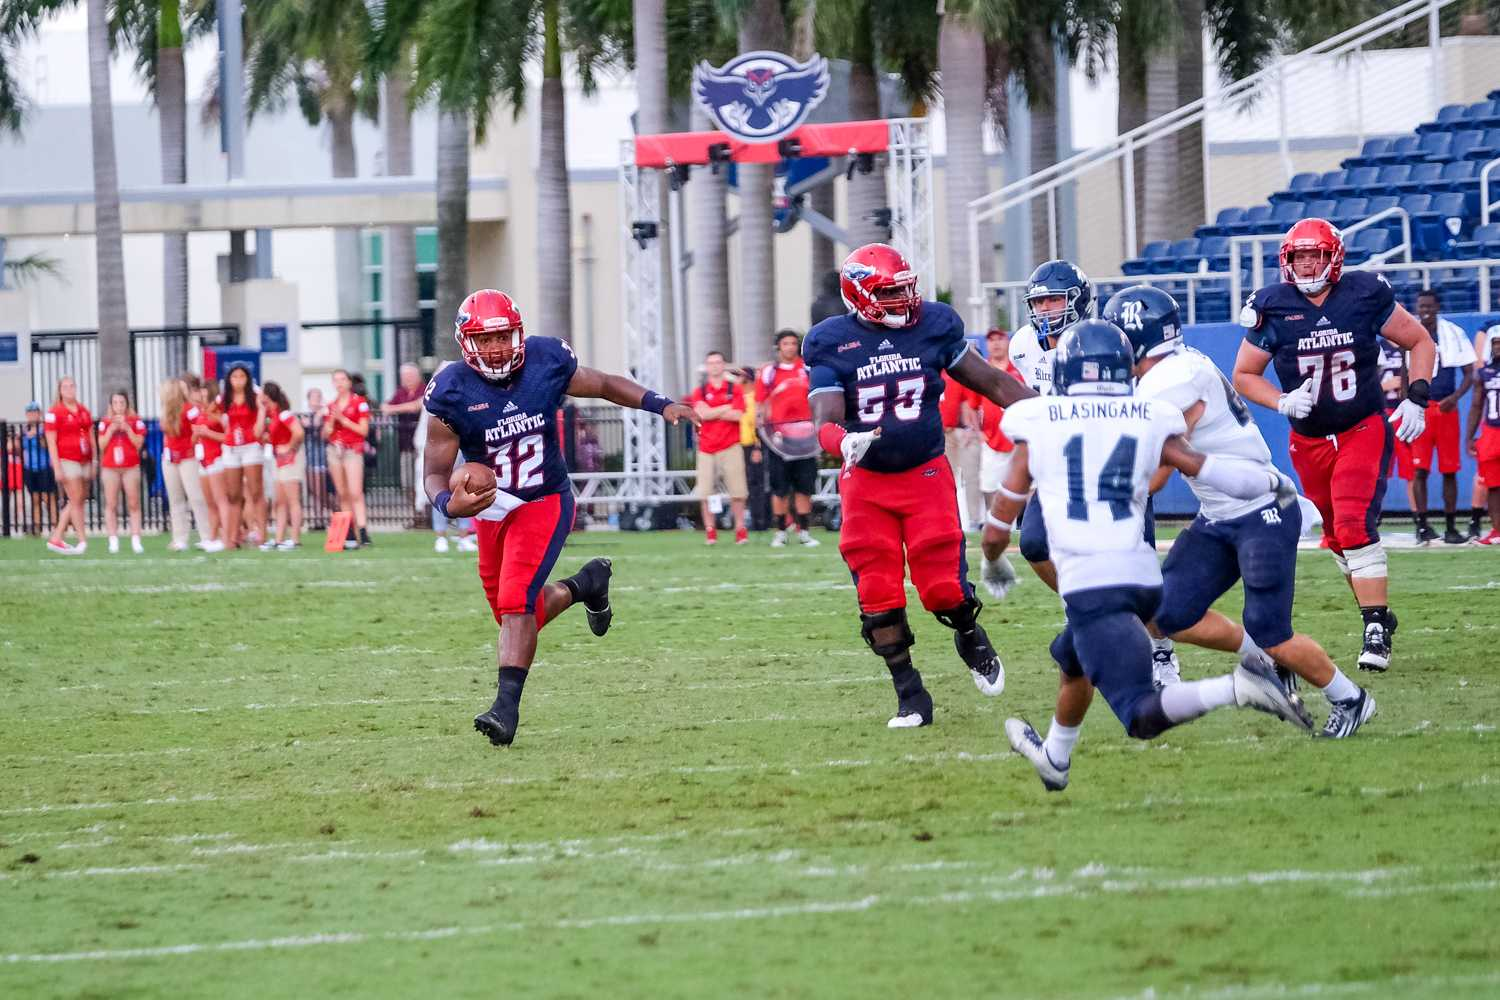 Redshirt senior quarterback Jaquez Johnson led the offense on a 75-yard drive during FAU's first possession of the game, finishing with an 11-yard pass to redshirt sophomore receiver Kalib Woods for a touchdown. The score tied the game at seven. Mohammed F Emran | Asst. Creative Director